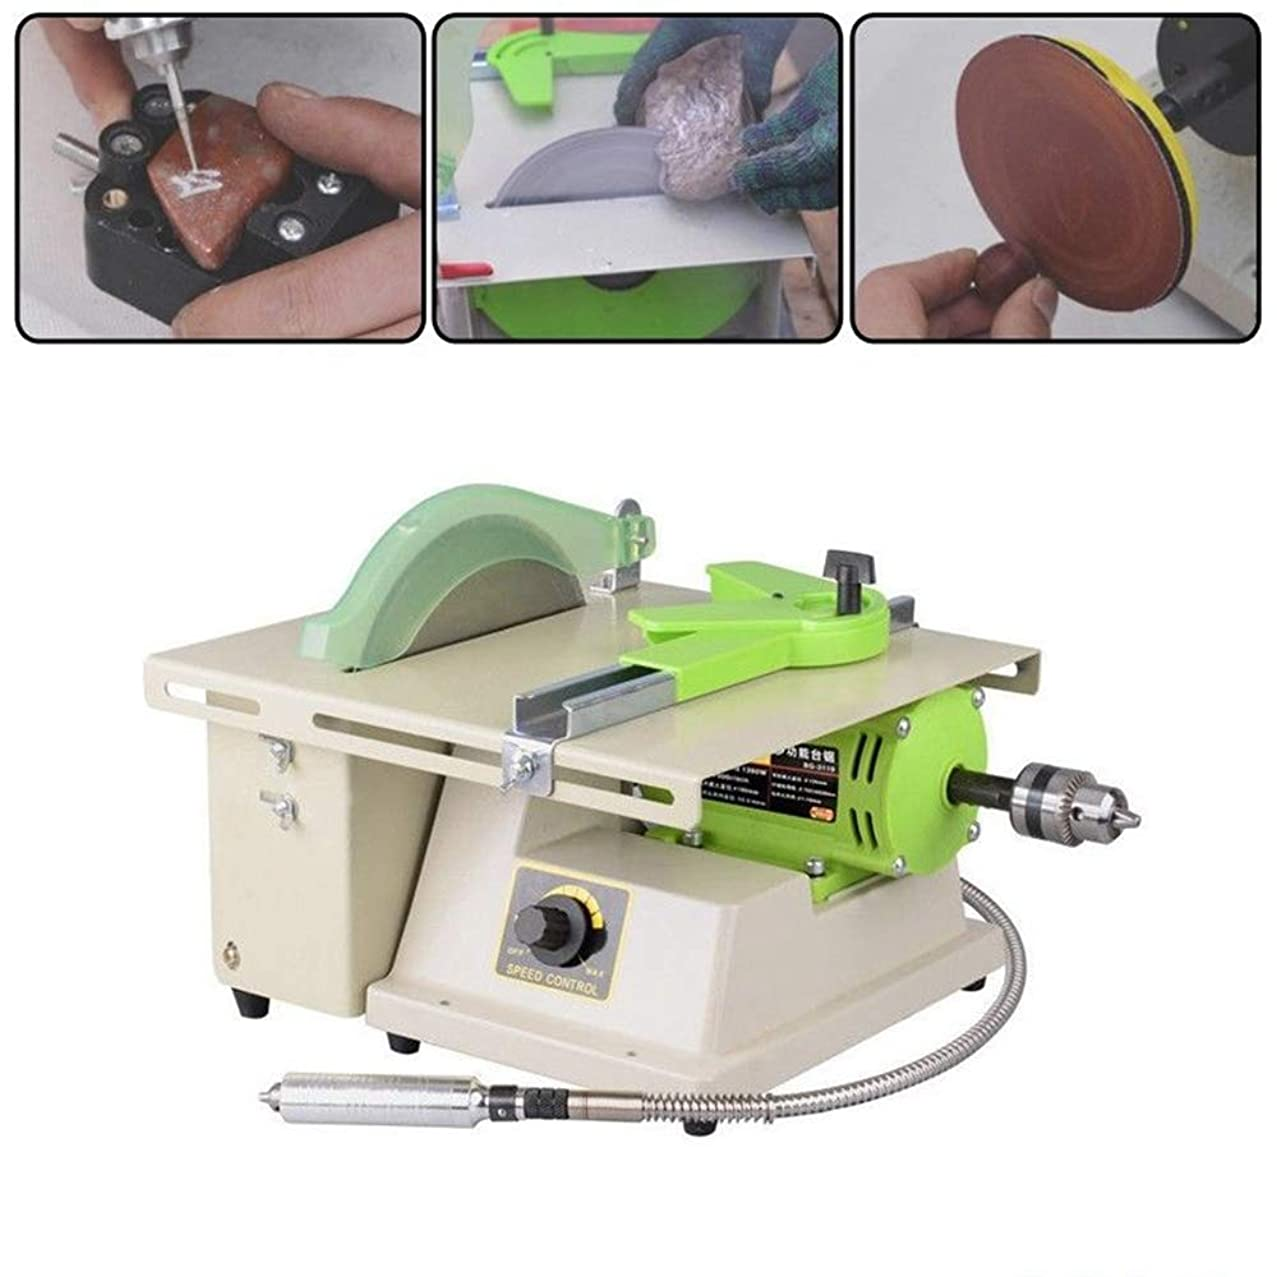 TongBF Multifunctional High-Power Jade Wood Carving Tool Jewelry Rock Polishing Drilling Bench Lathe Electric Grinder for Cutting and Polishing, 220V 1380W 500~7000rpm